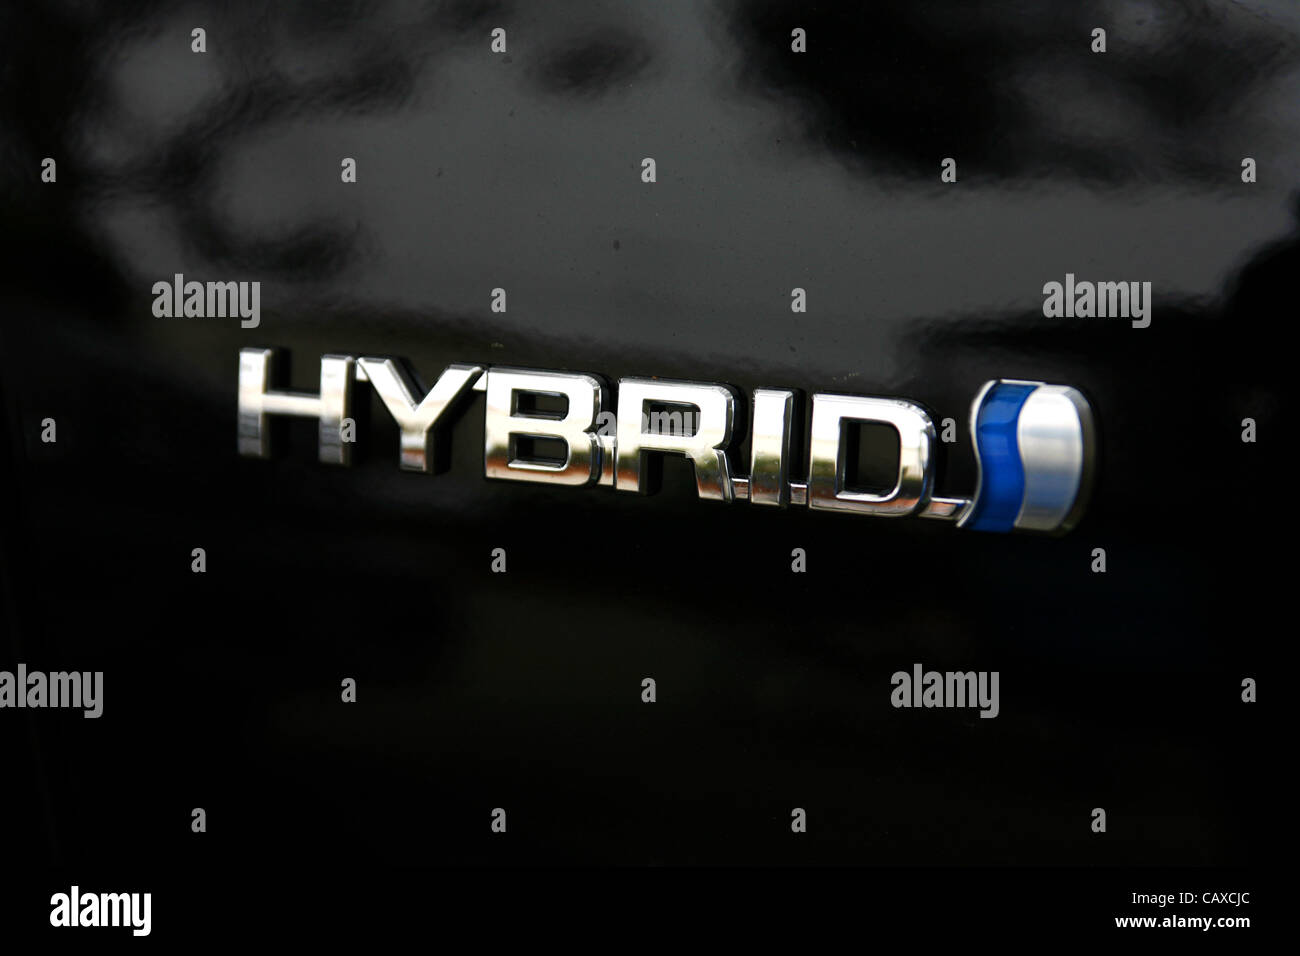 Oct 02, 2007 - La Jolla, California, USA - Hybrid Synergy drive badge on a Toyota Prius. Hybrid cars are becoming - Stock Image